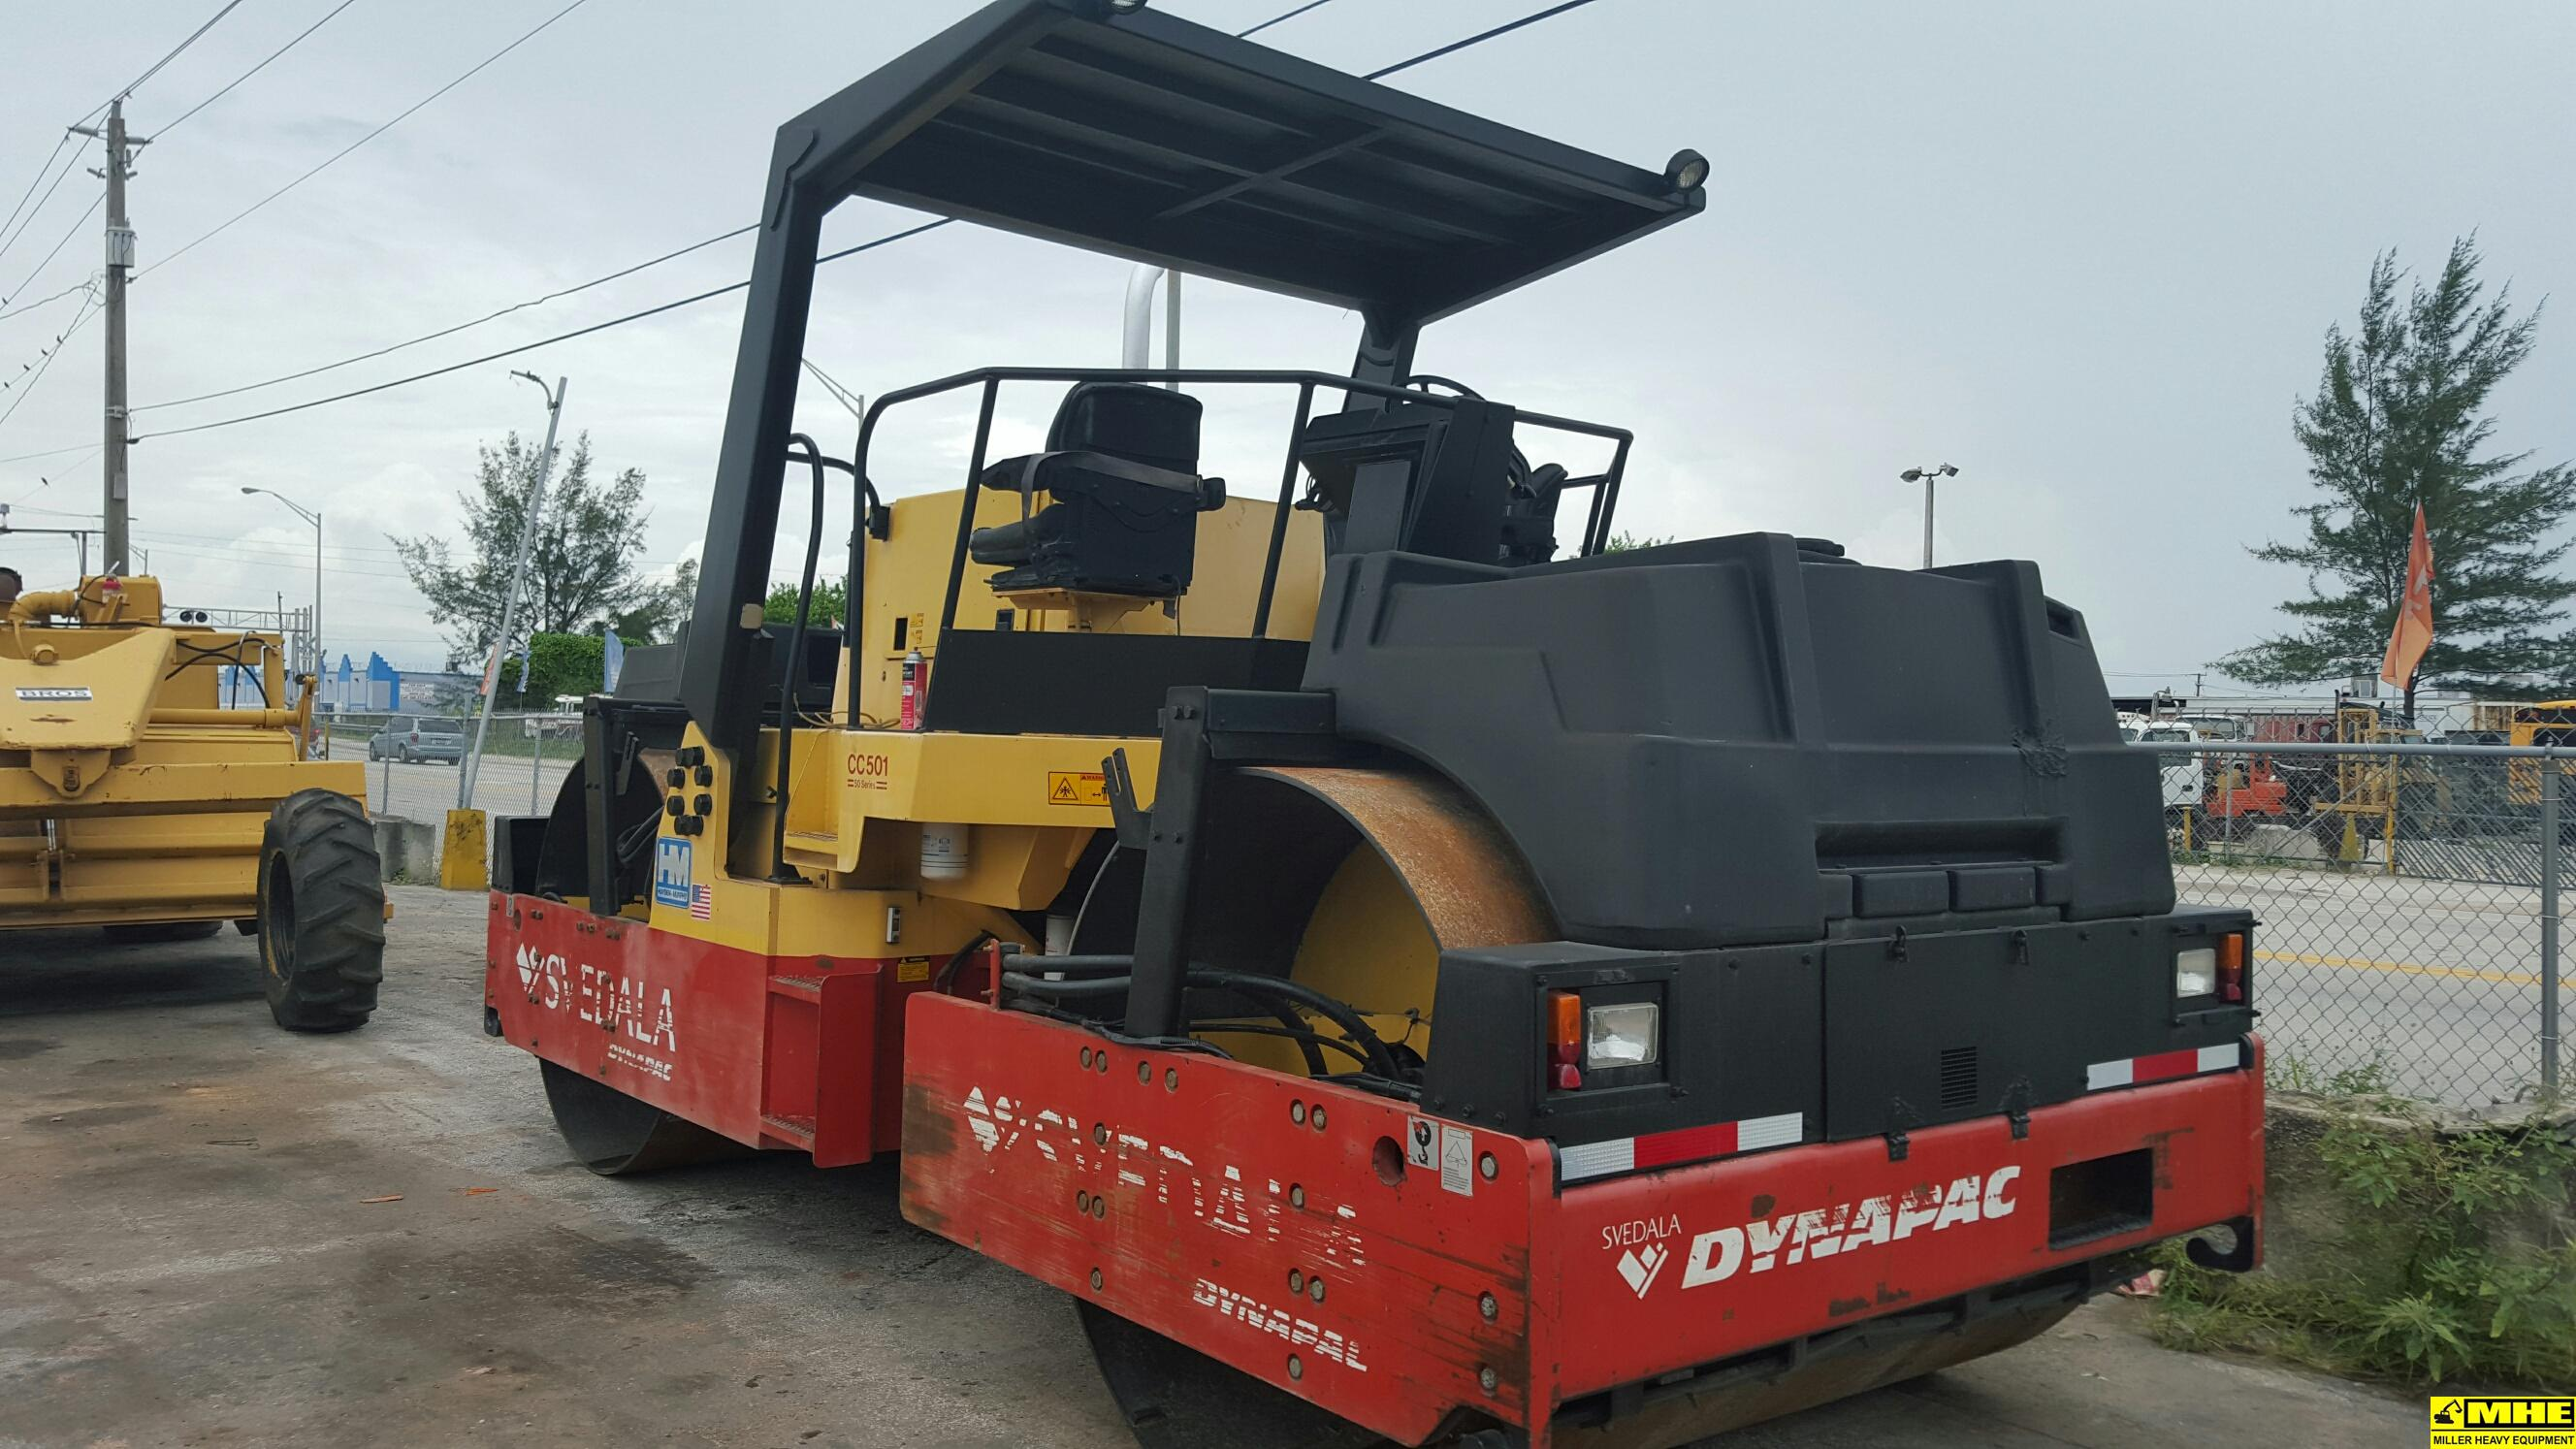 Bulldozers For Sale >> DYNAPAC CC501 roller – Used Heavy Equipment For Sale Asphalt Paving Road Construction Bergkamp ...